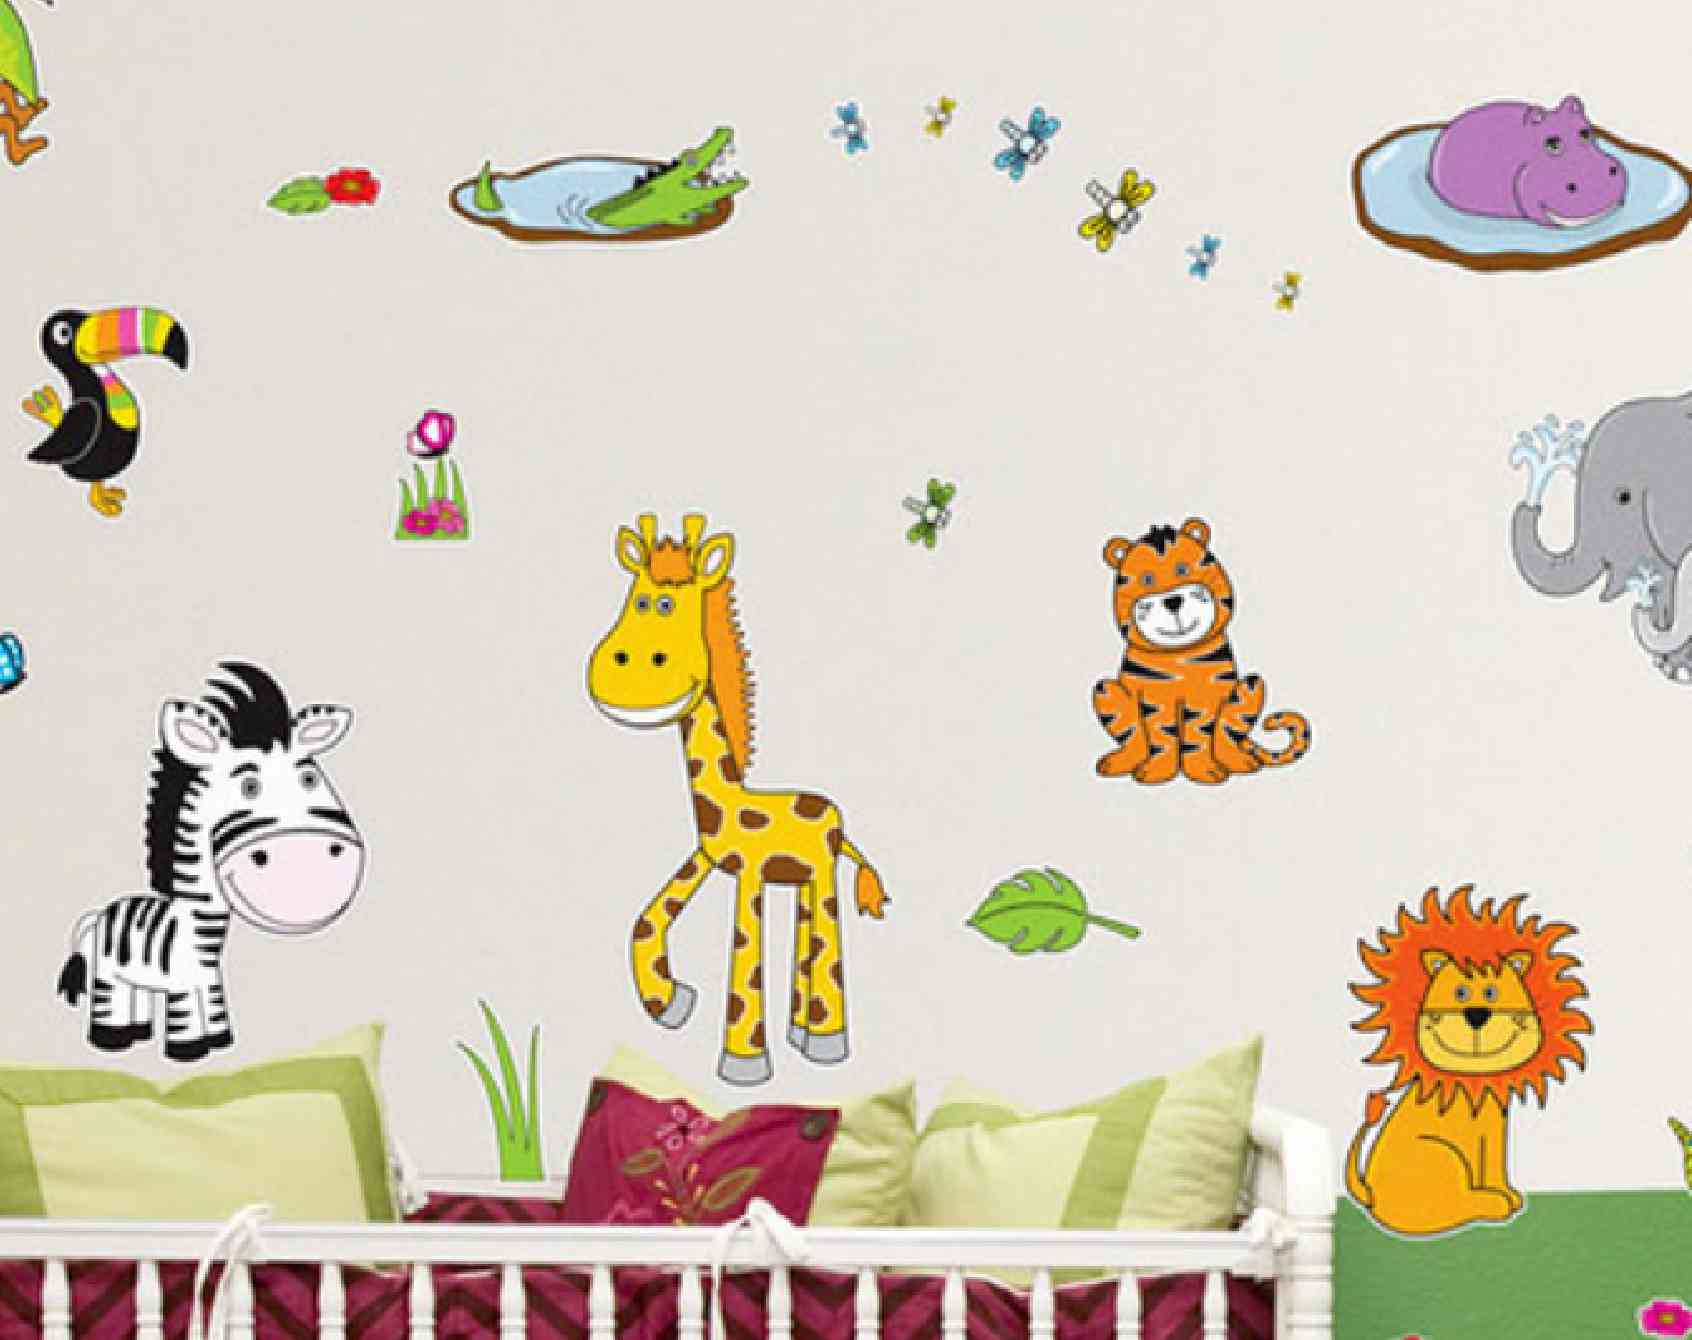 Cutout Wall Decals Peel  Stick Wallpaper Printing - Somewhat about wall stickers